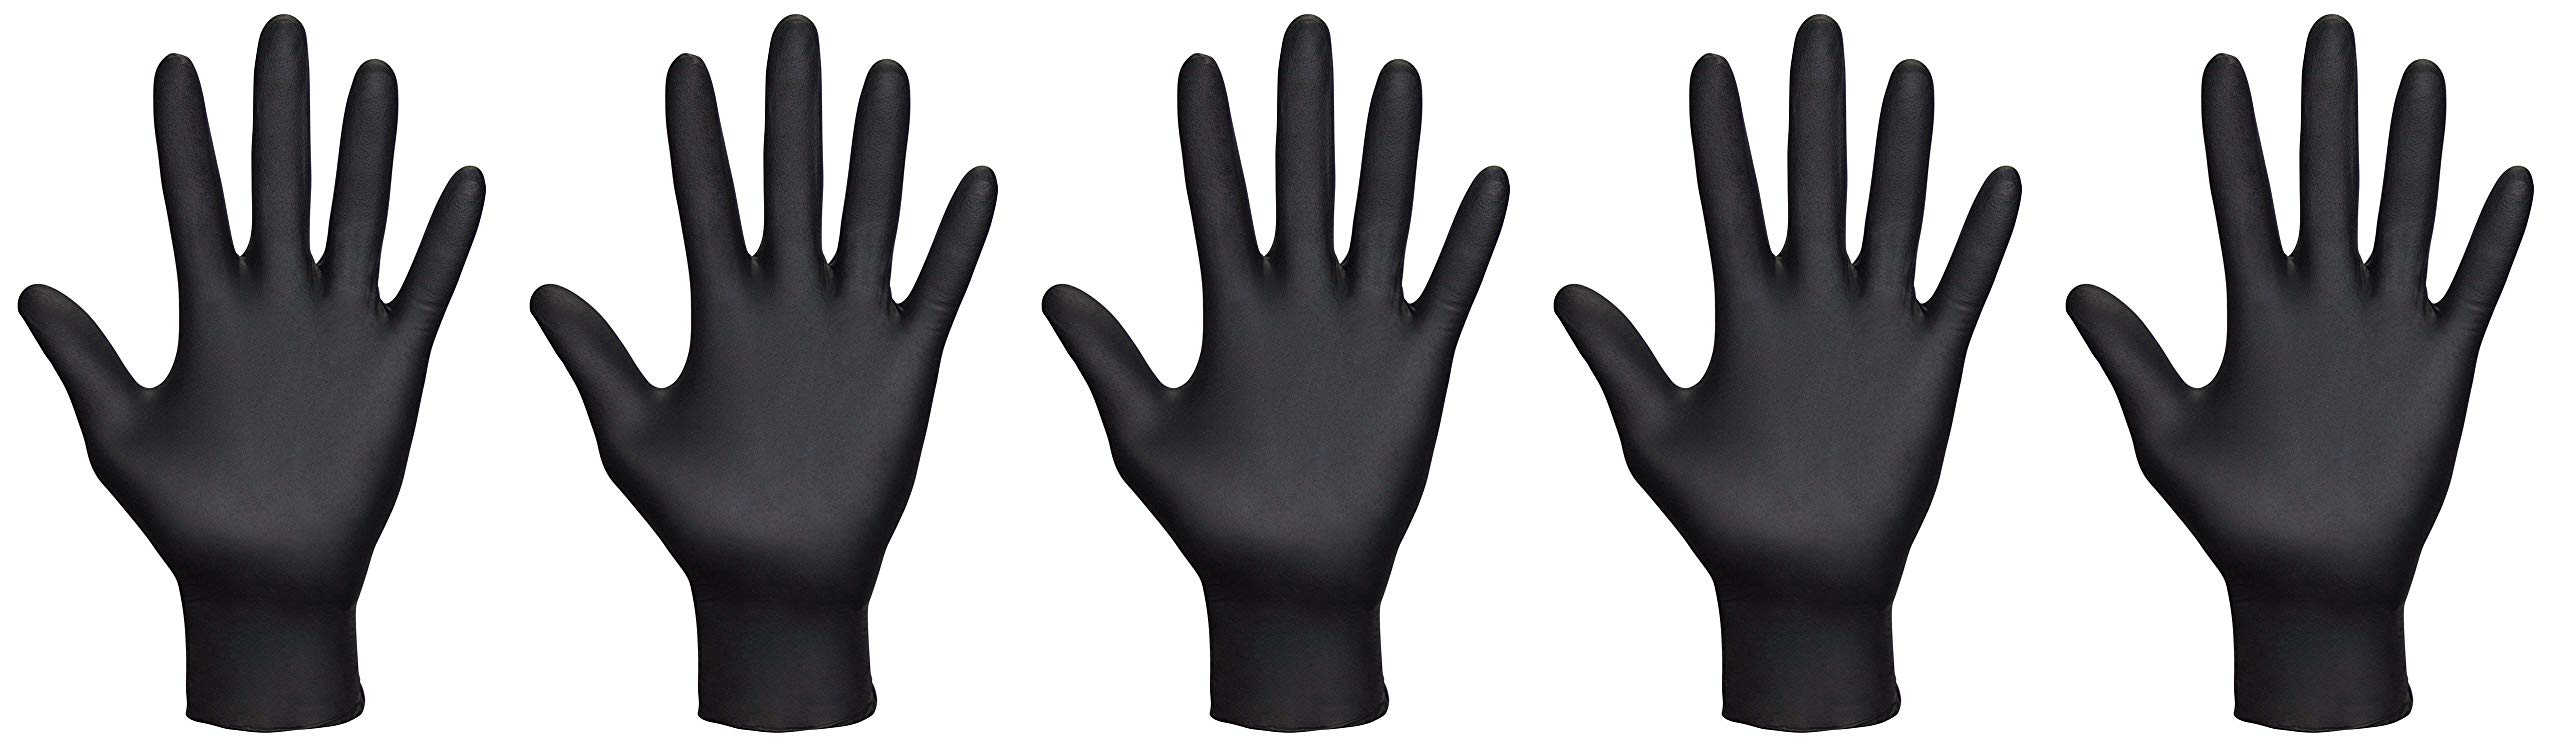 SAS Safety 66518 Raven Powder-Free Disposable Black Nitrile 6 Mil Gloves, Large, 100 Gloves by Weight - 5 Pack